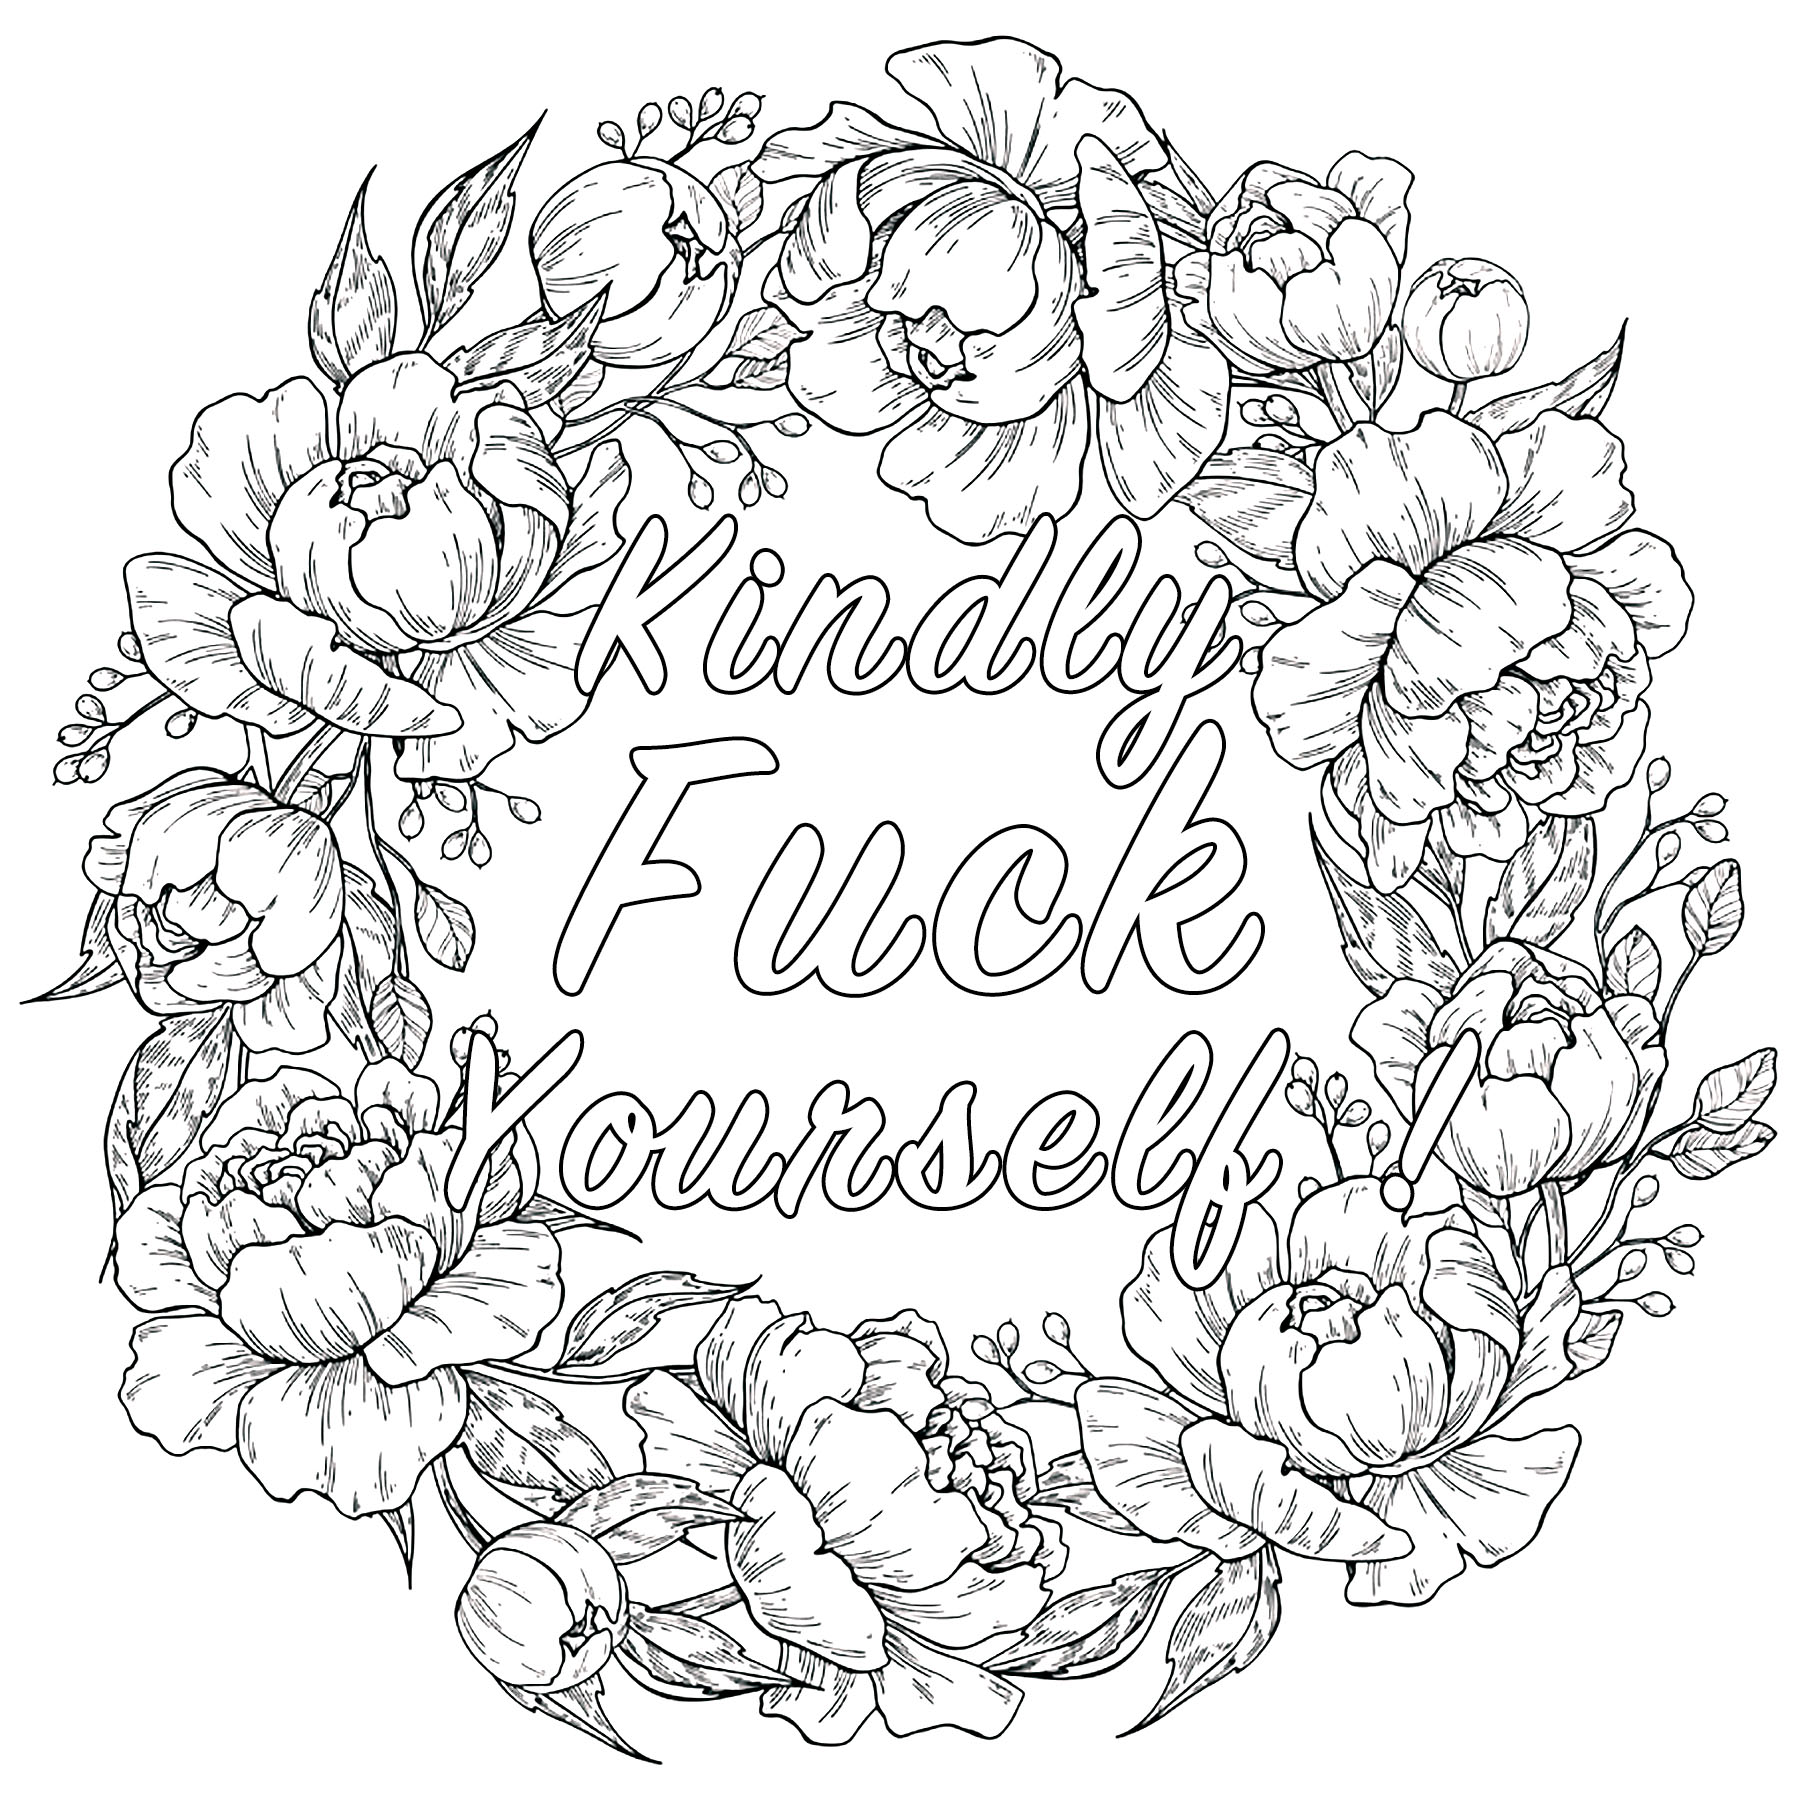 Kindly Fuck Yourself : Swear word coloring page with flowered crown